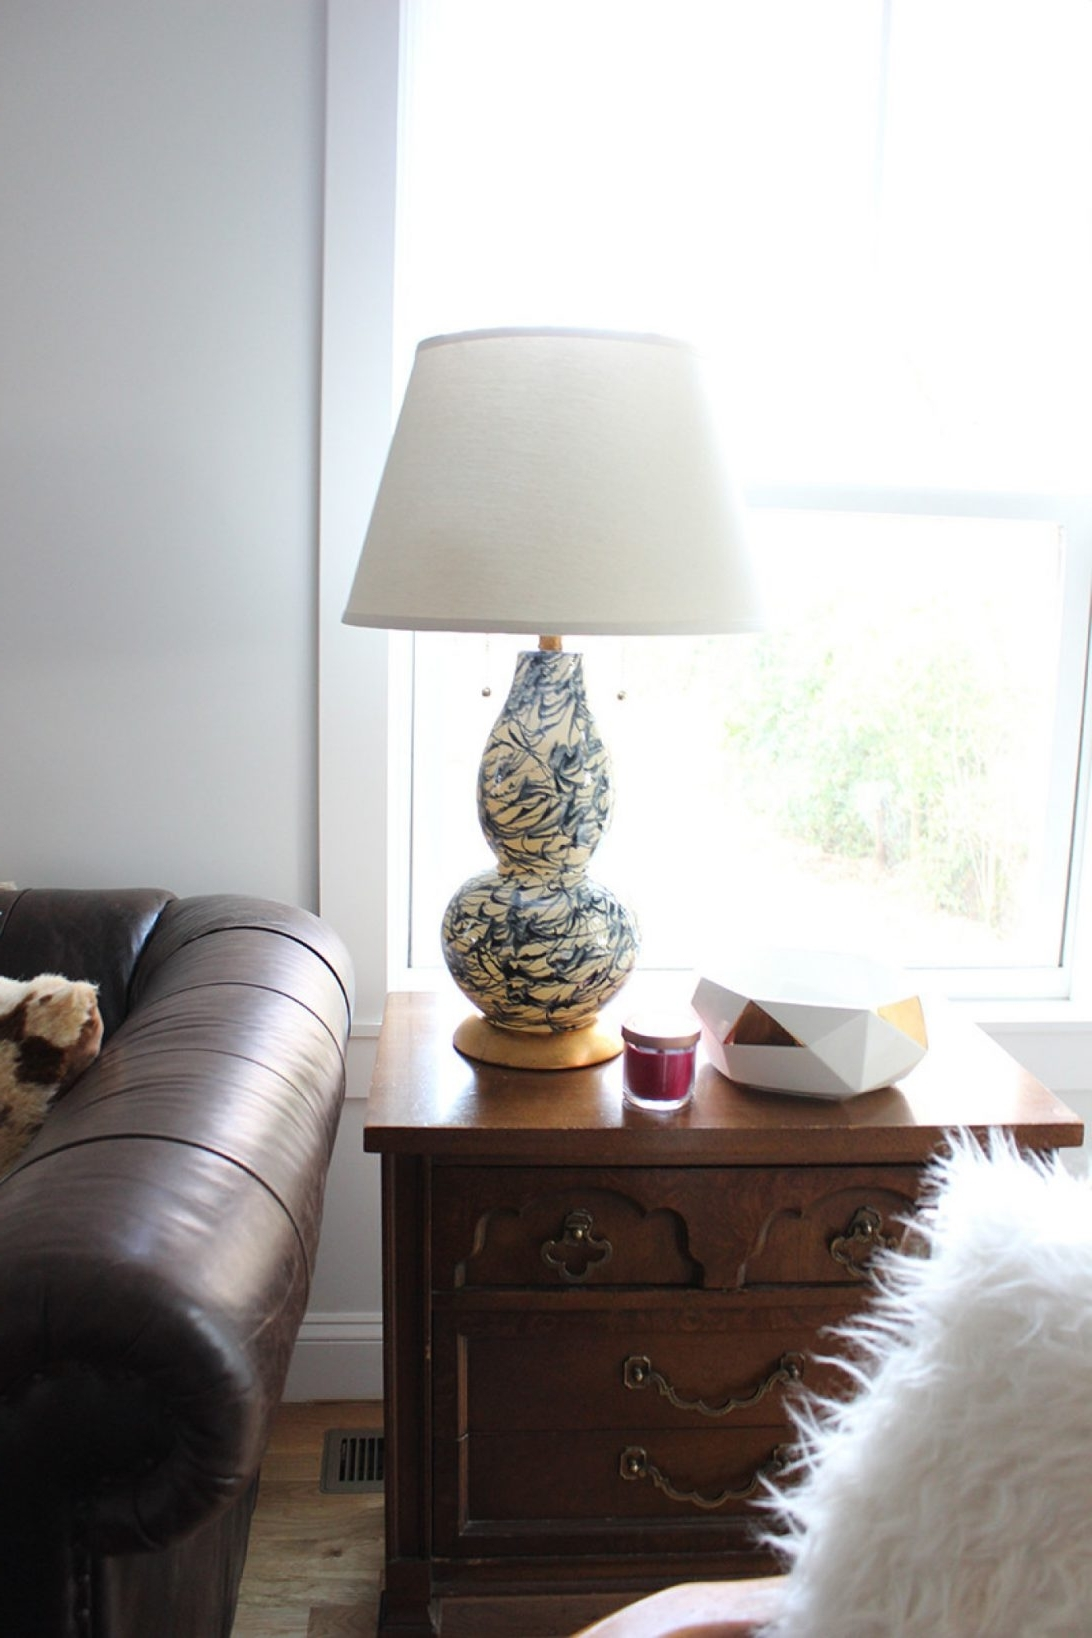 Popular 62 Most Skookum Bedside Lights Brass Table Lamp Big Lamps For Living In Table Lamps For Living Room (View 15 of 15)